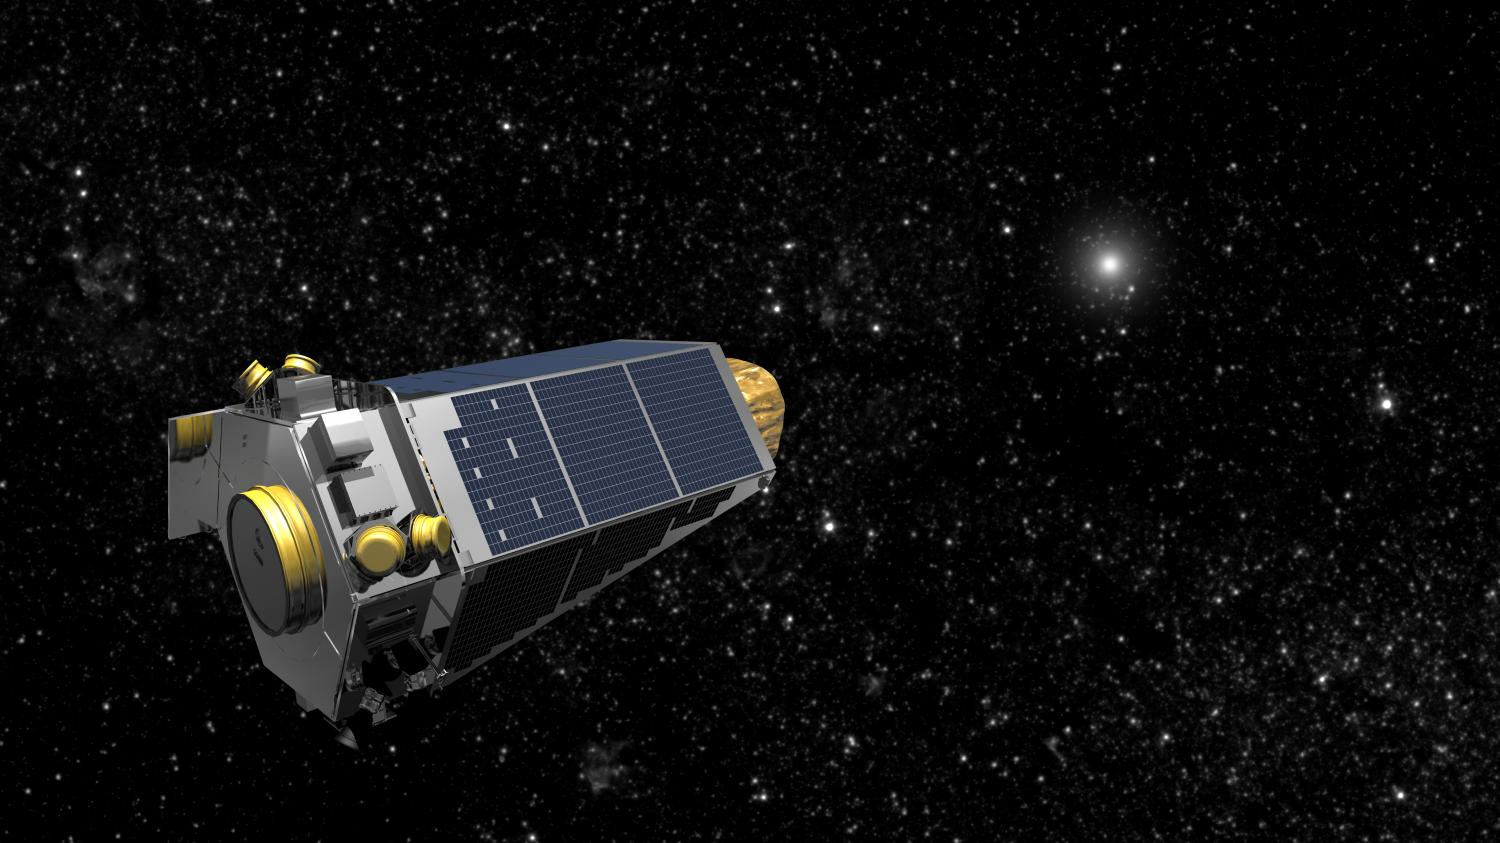 One of NASA's most powerful space telescopes is running out of fuel